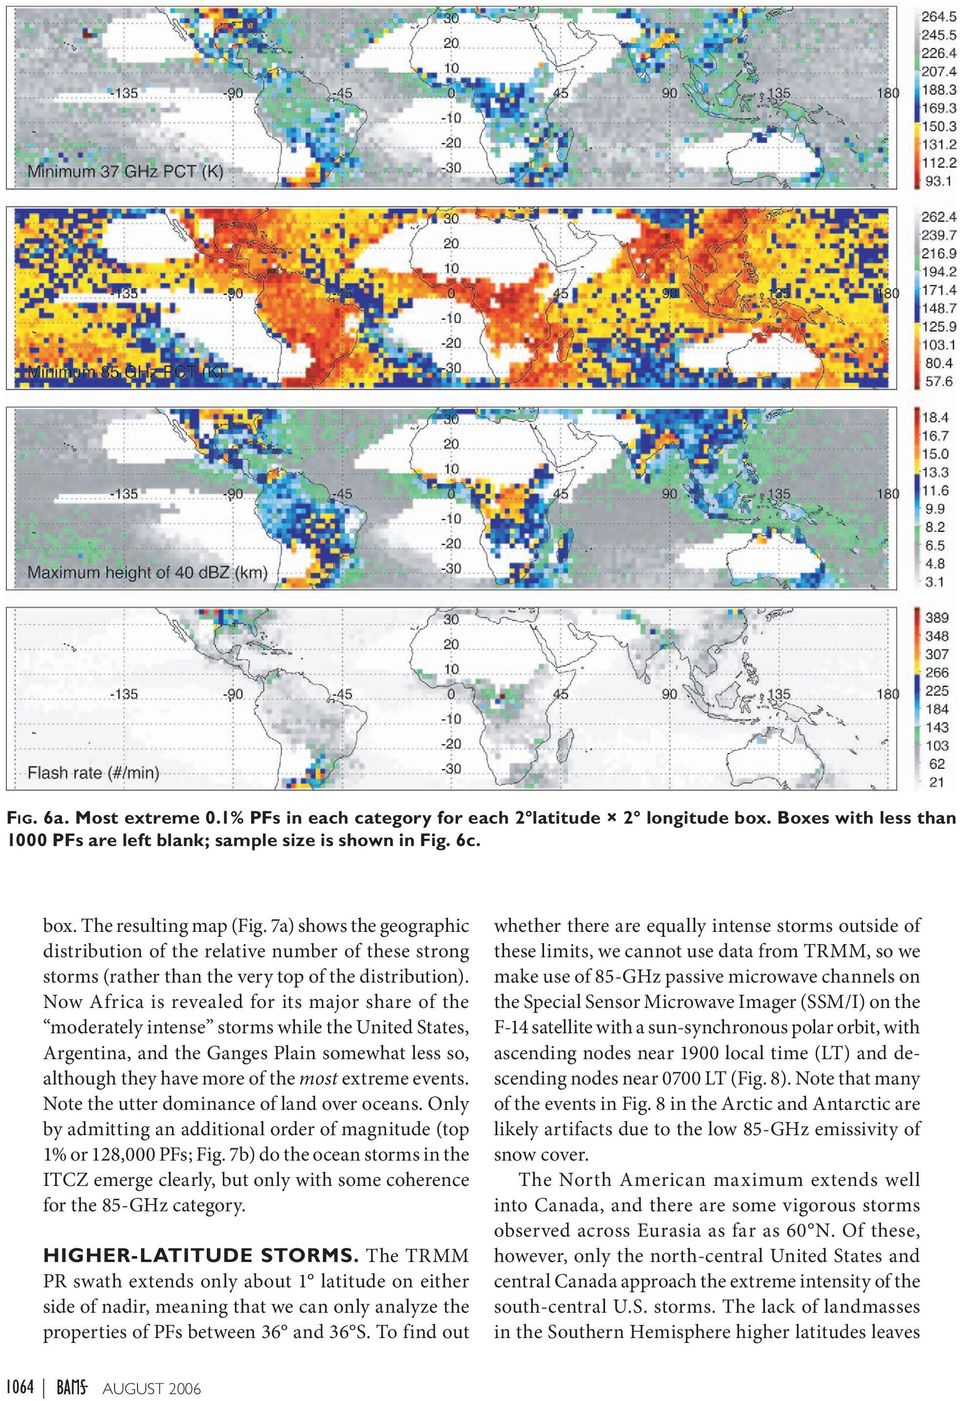 Now Africa is revealed for its major share of the moderately intense storms while the United States, Argentina, and the Ganges Plain somewhat less so, although they have more of the most extreme